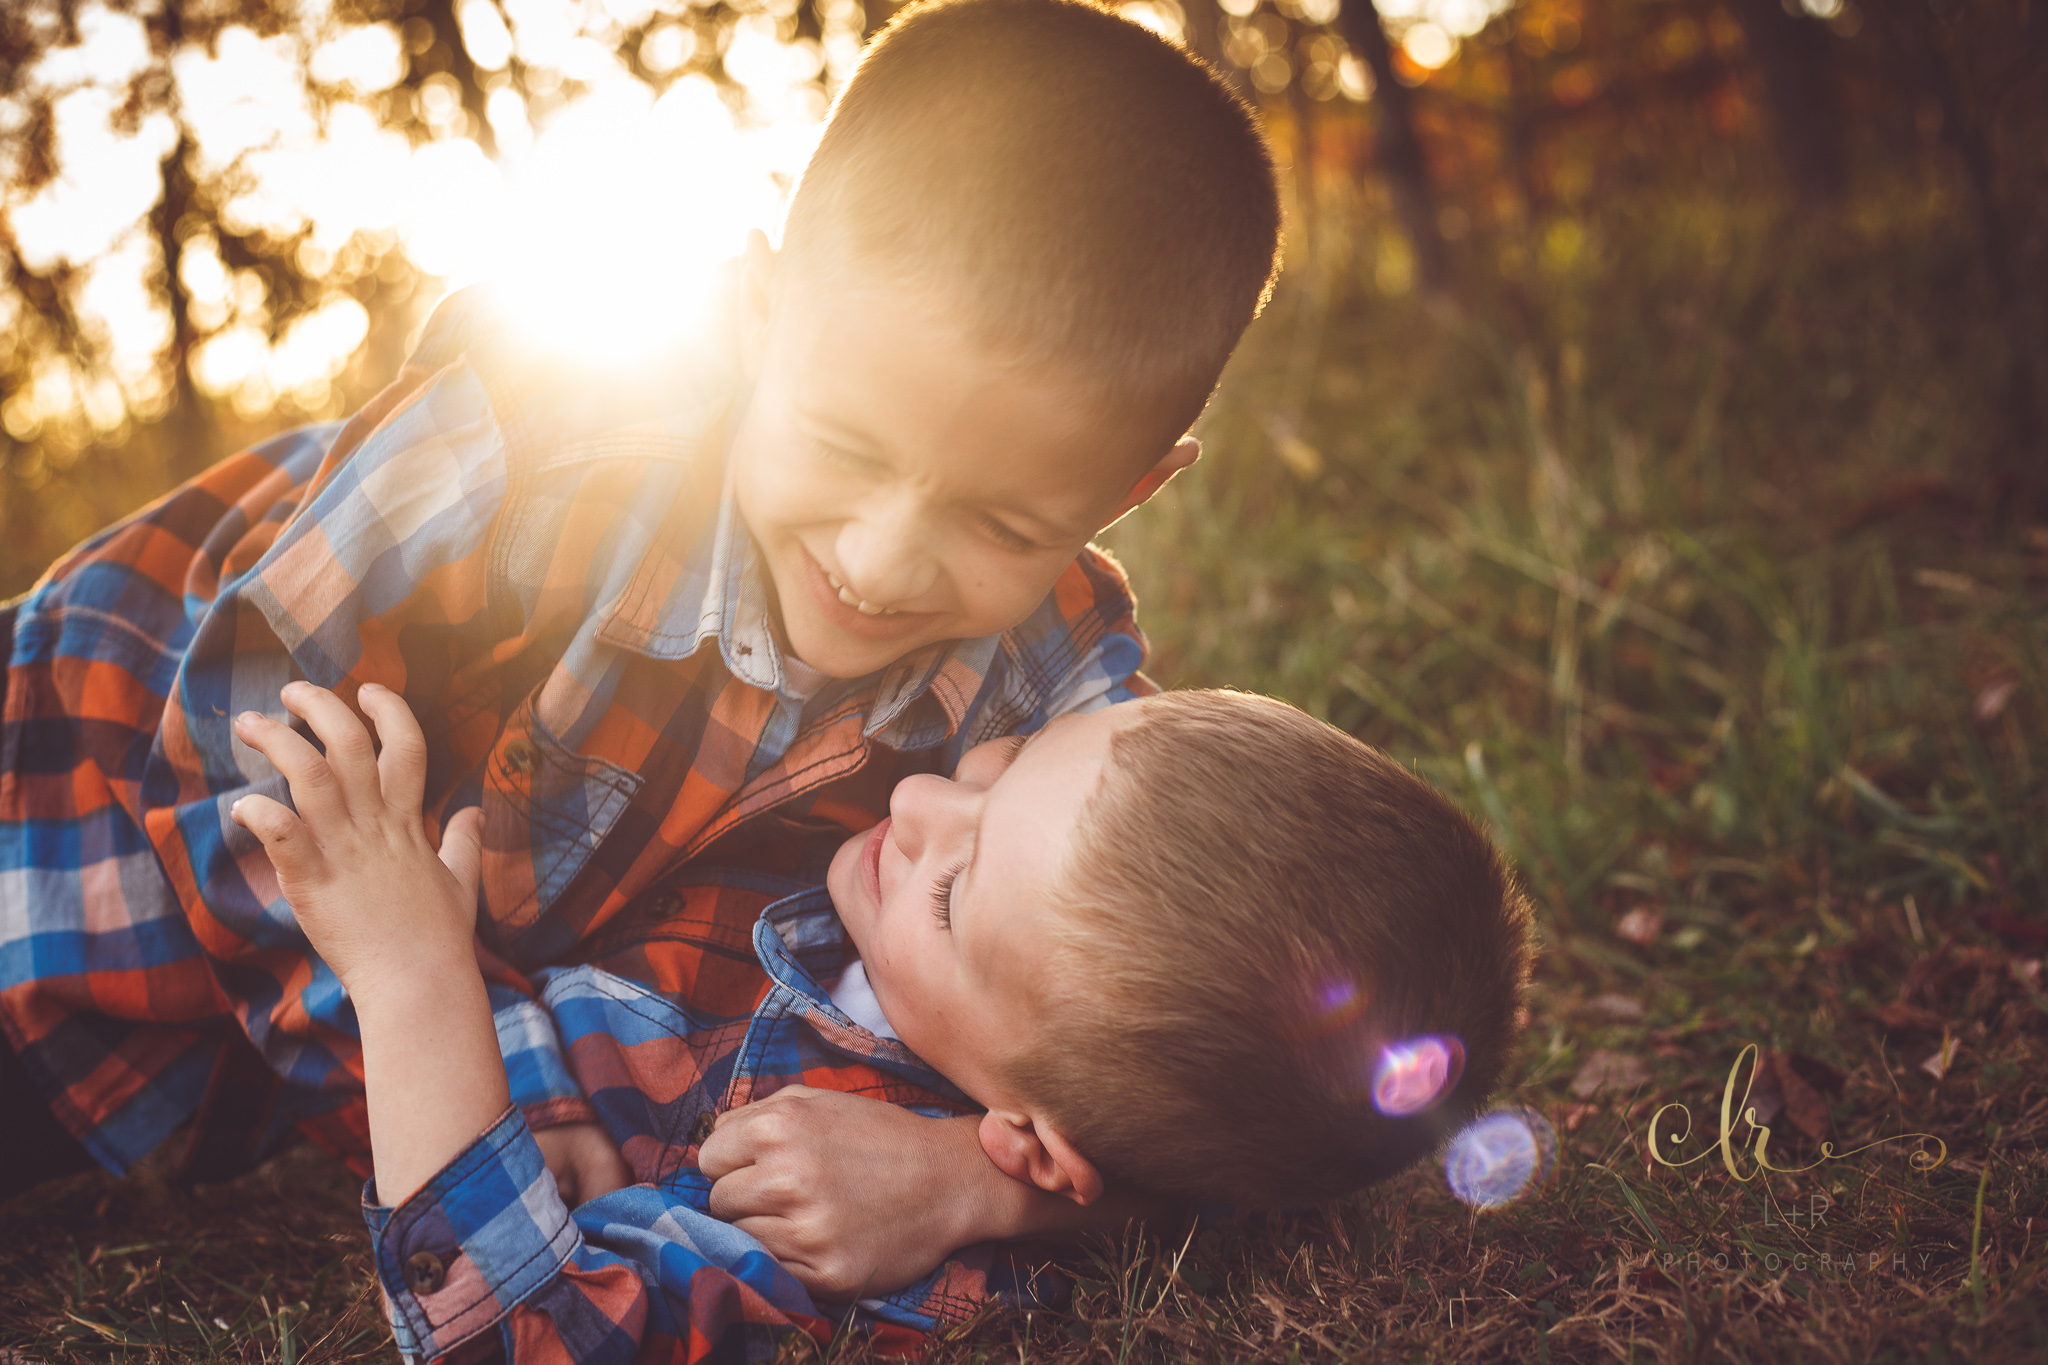 Two young brothers enjoy a moment, wrestling on the ground and laughing during this sunset family photography session by L&R Photography